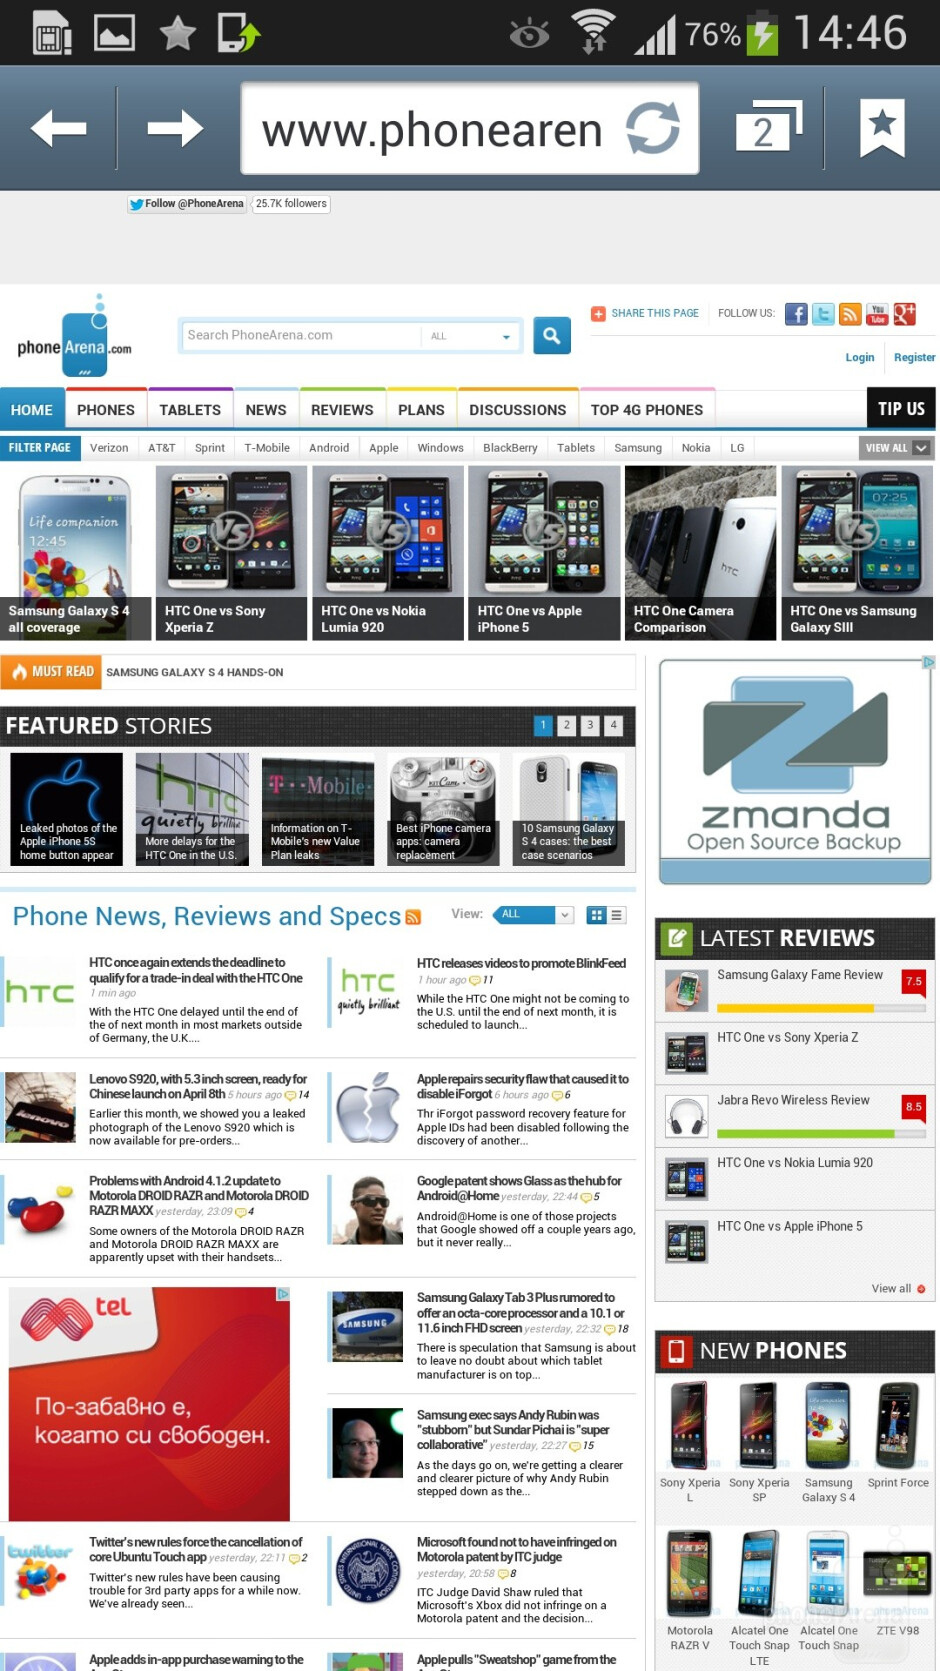 Samsung's custom browser is fast and supports Flash Player. - Samsung Galaxy S4 Review